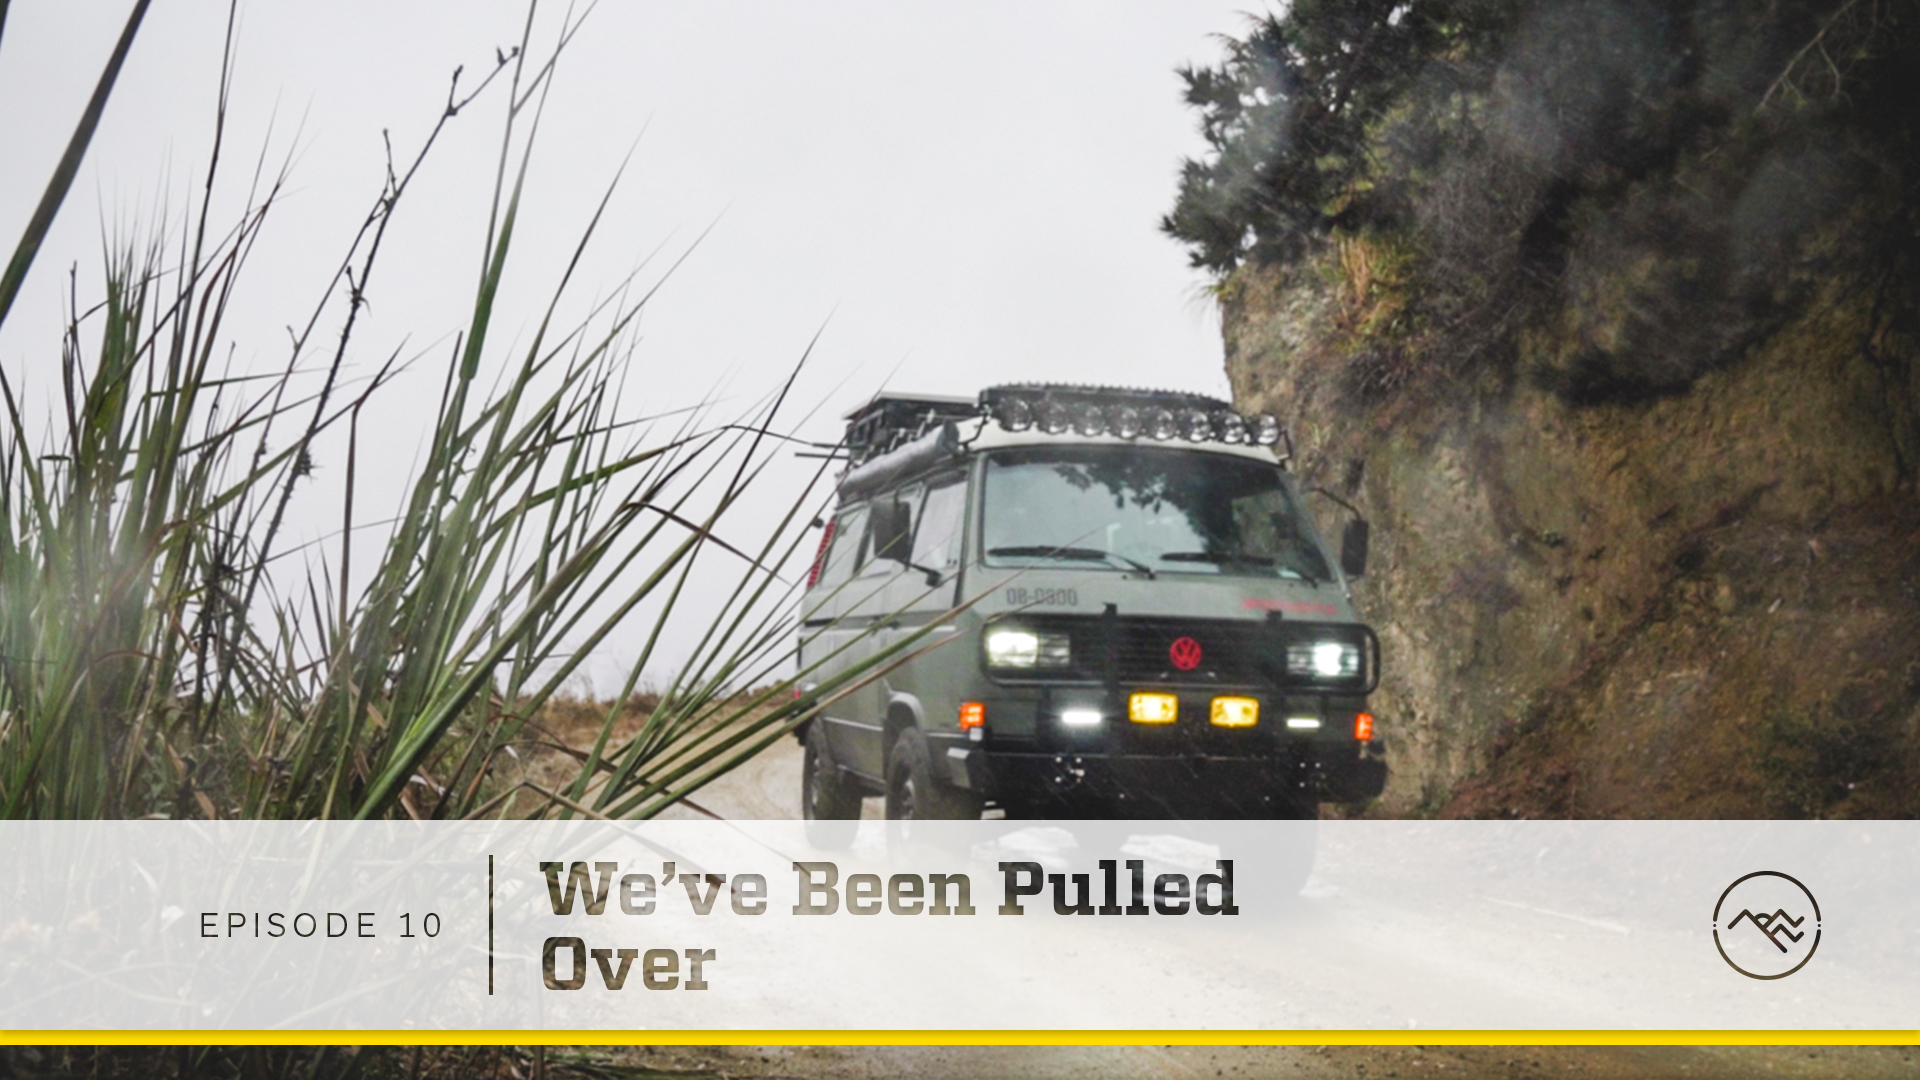 E010 : We've Been Pulled Over